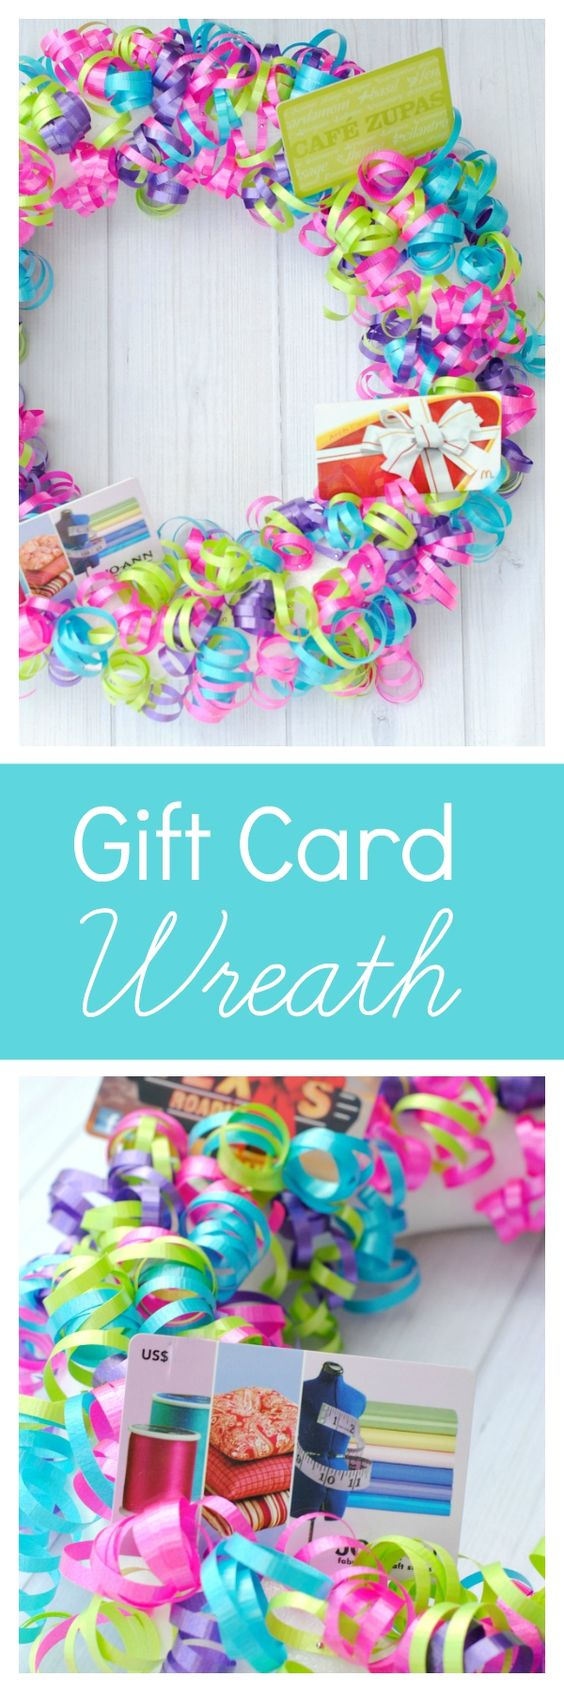 Cute Gift Idea-Make a festive wreath and fill it with gift cards!: